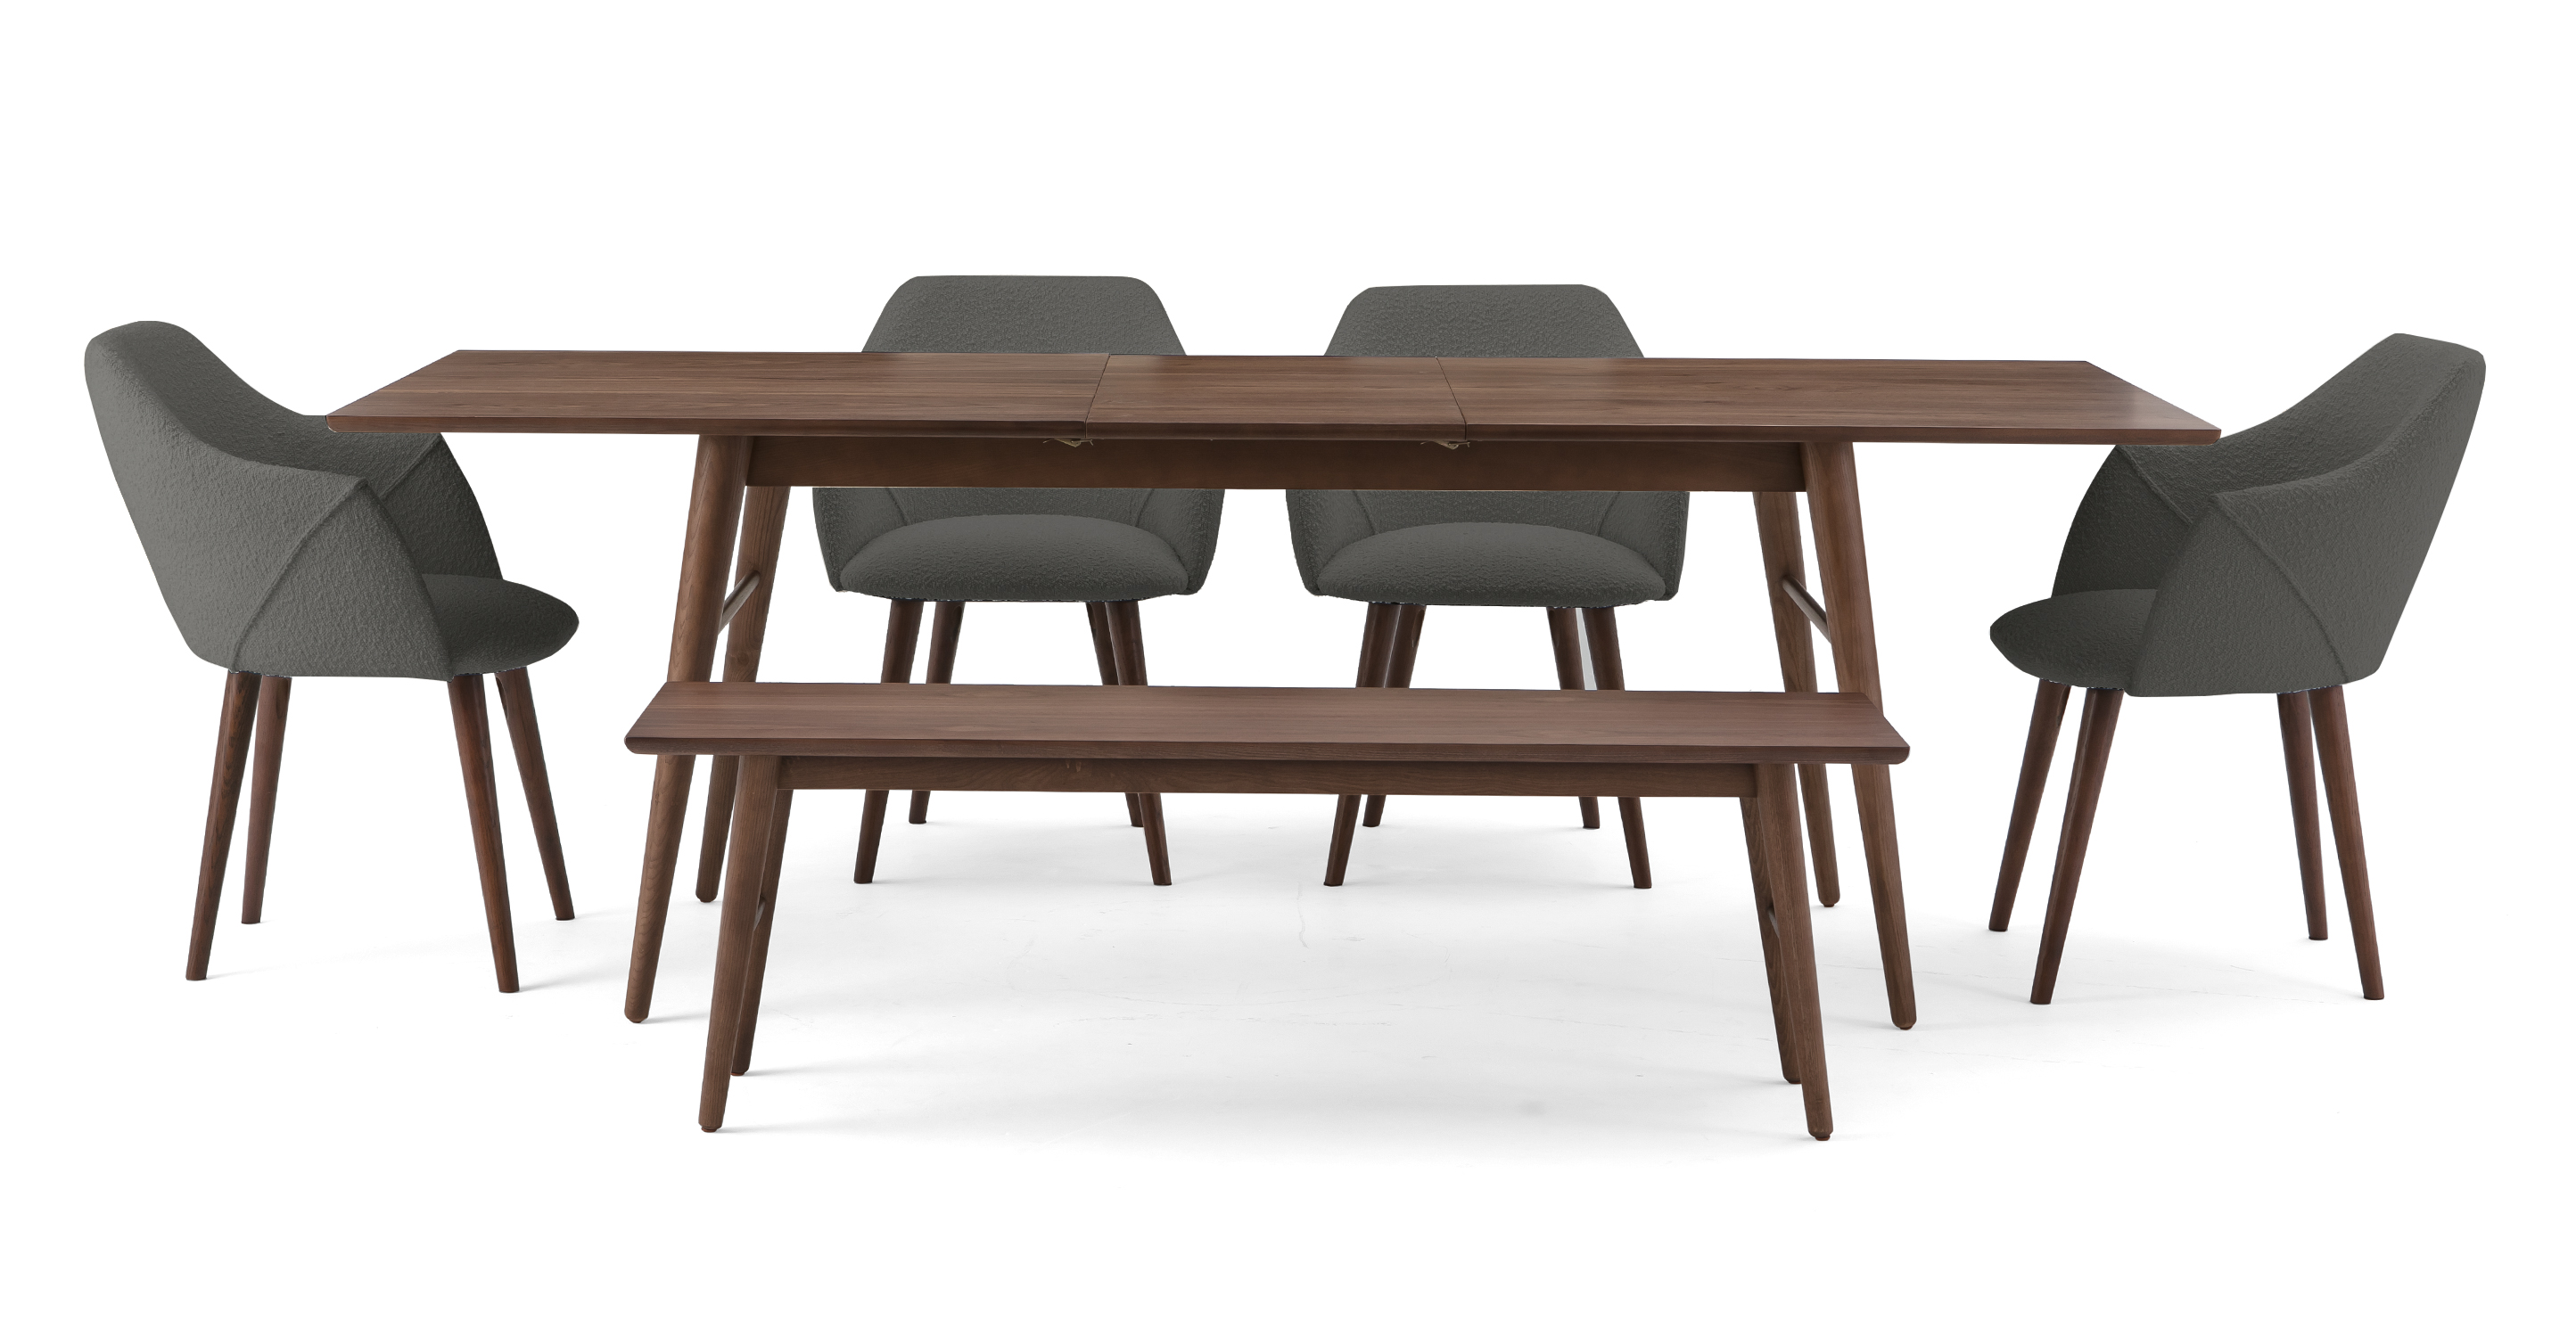 """Smiley 71-89"""" Extendable Dining Table (1) Bench (4) Berki Chairs, Walnut/Gris Boucle"""